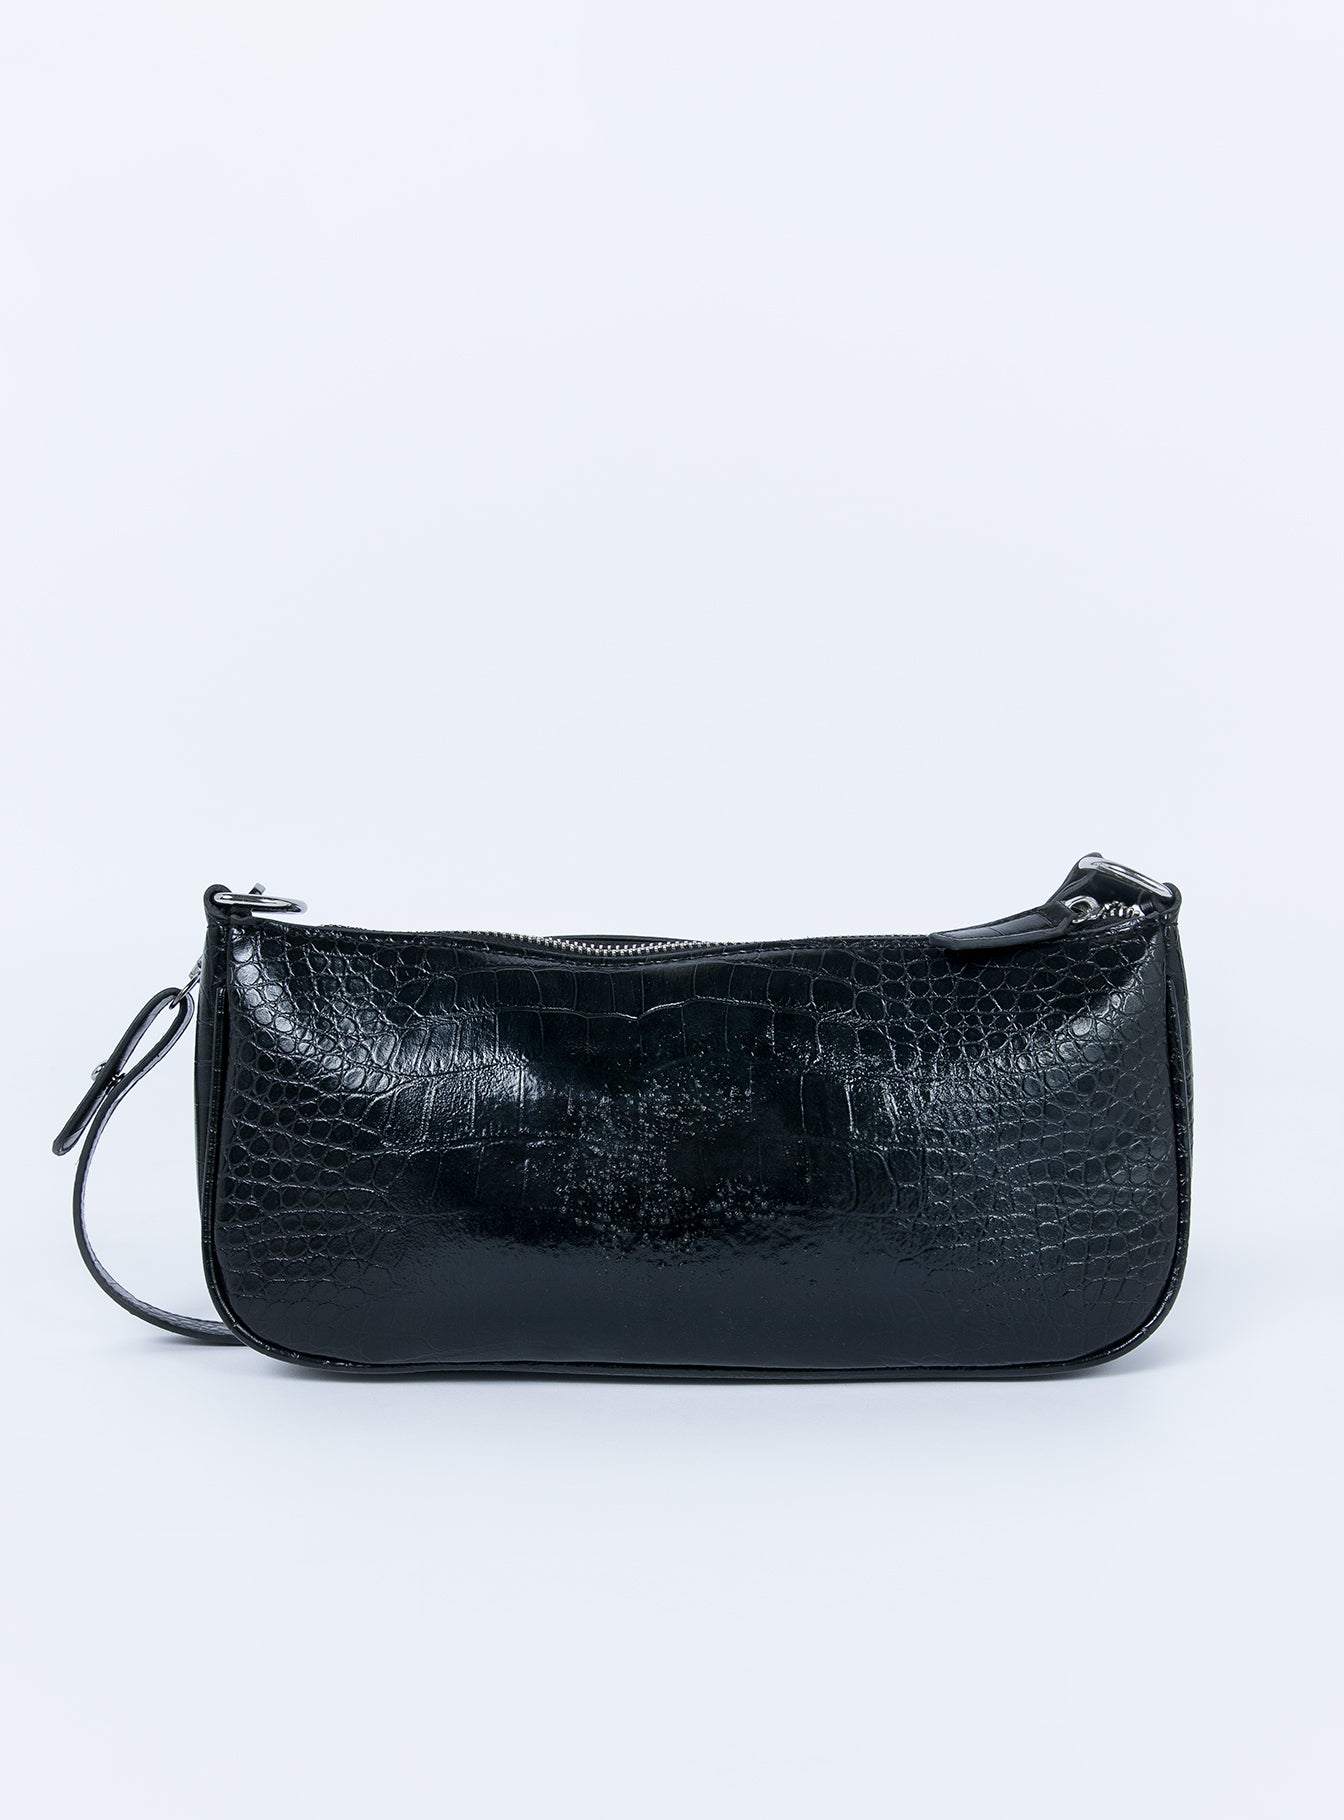 Milani Bag Black